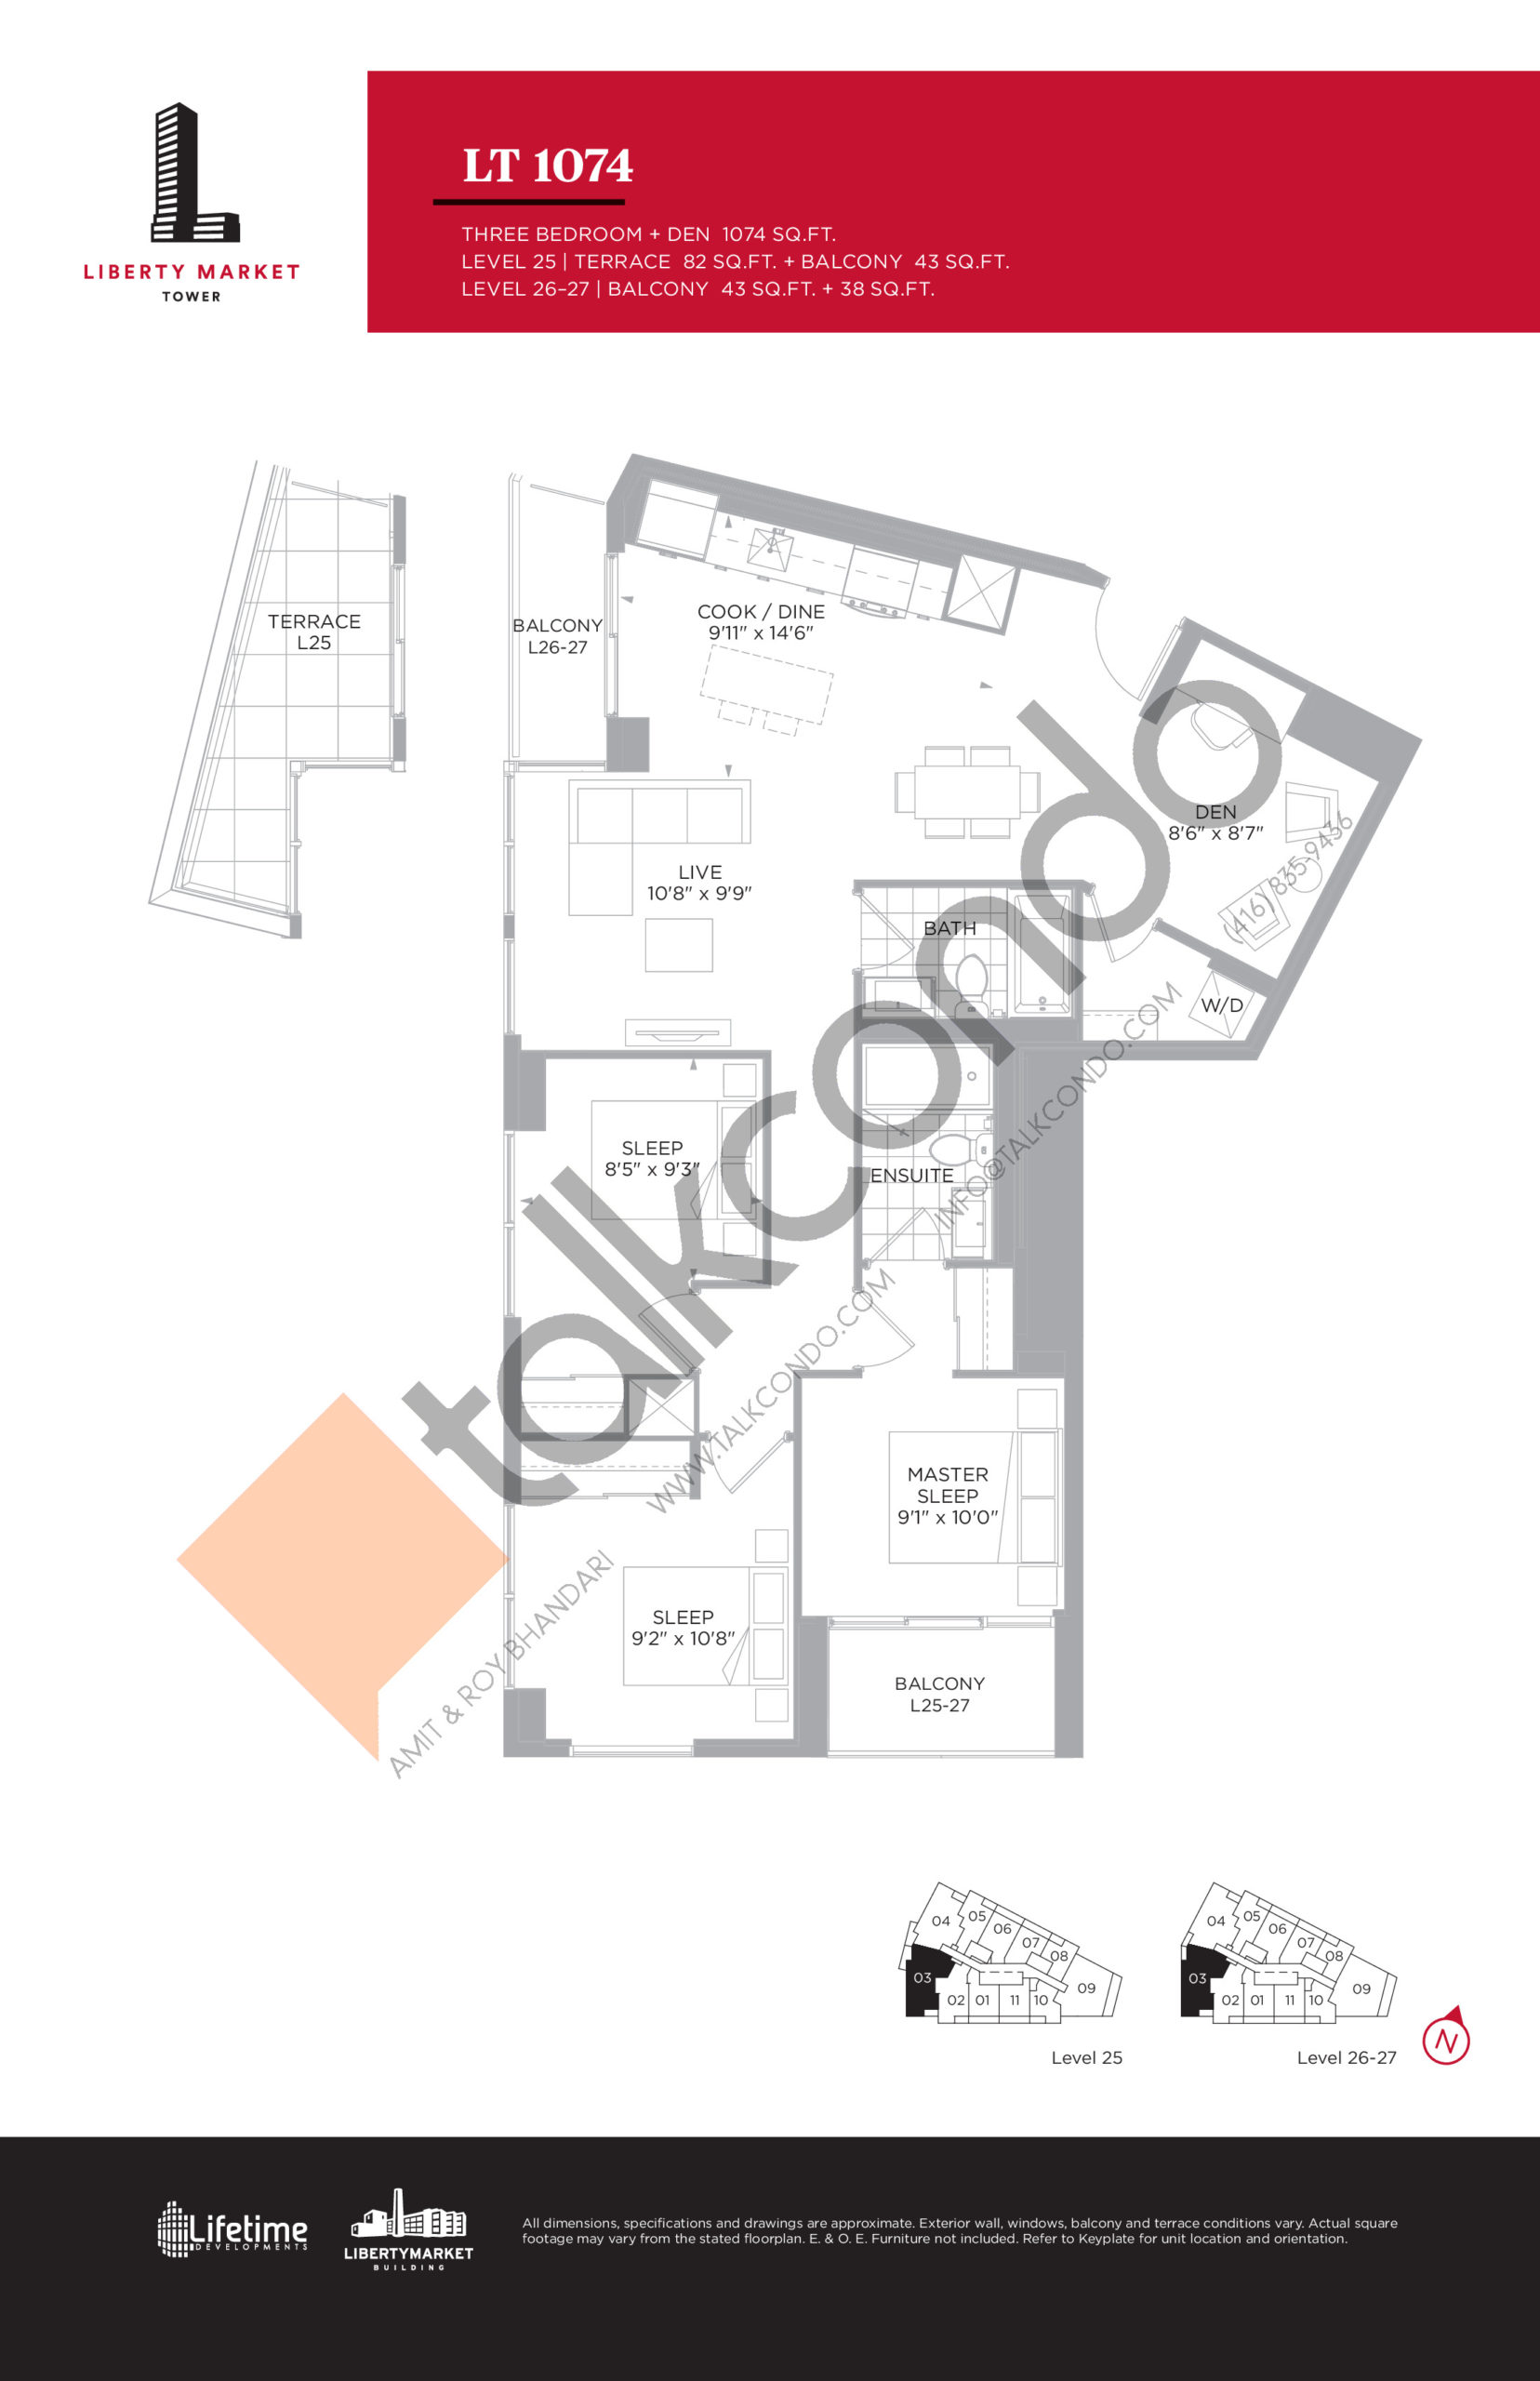 LT 1074 - Tower Collection Floor Plan at Liberty Market Tower Condos - 1074 sq.ft